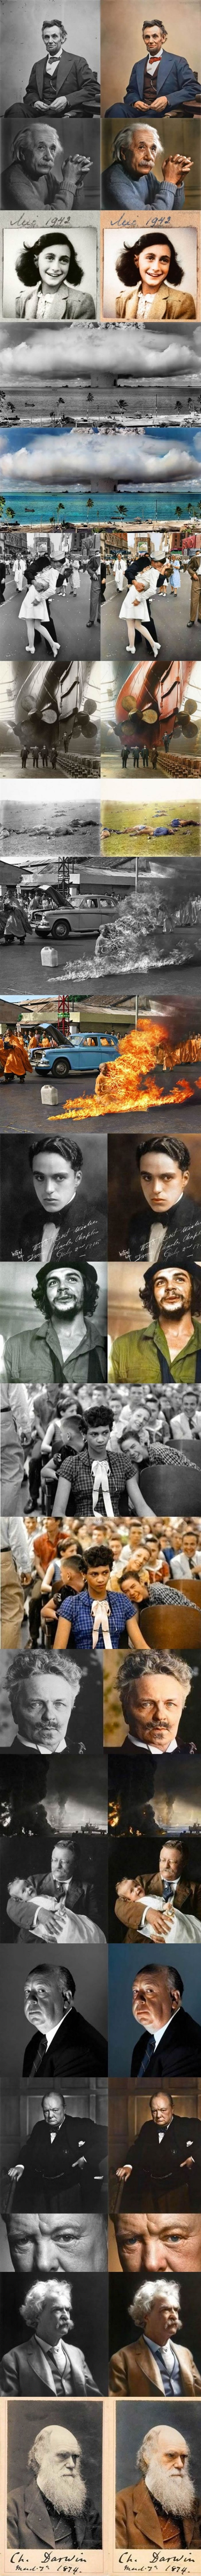 Famous Pictures Colorized